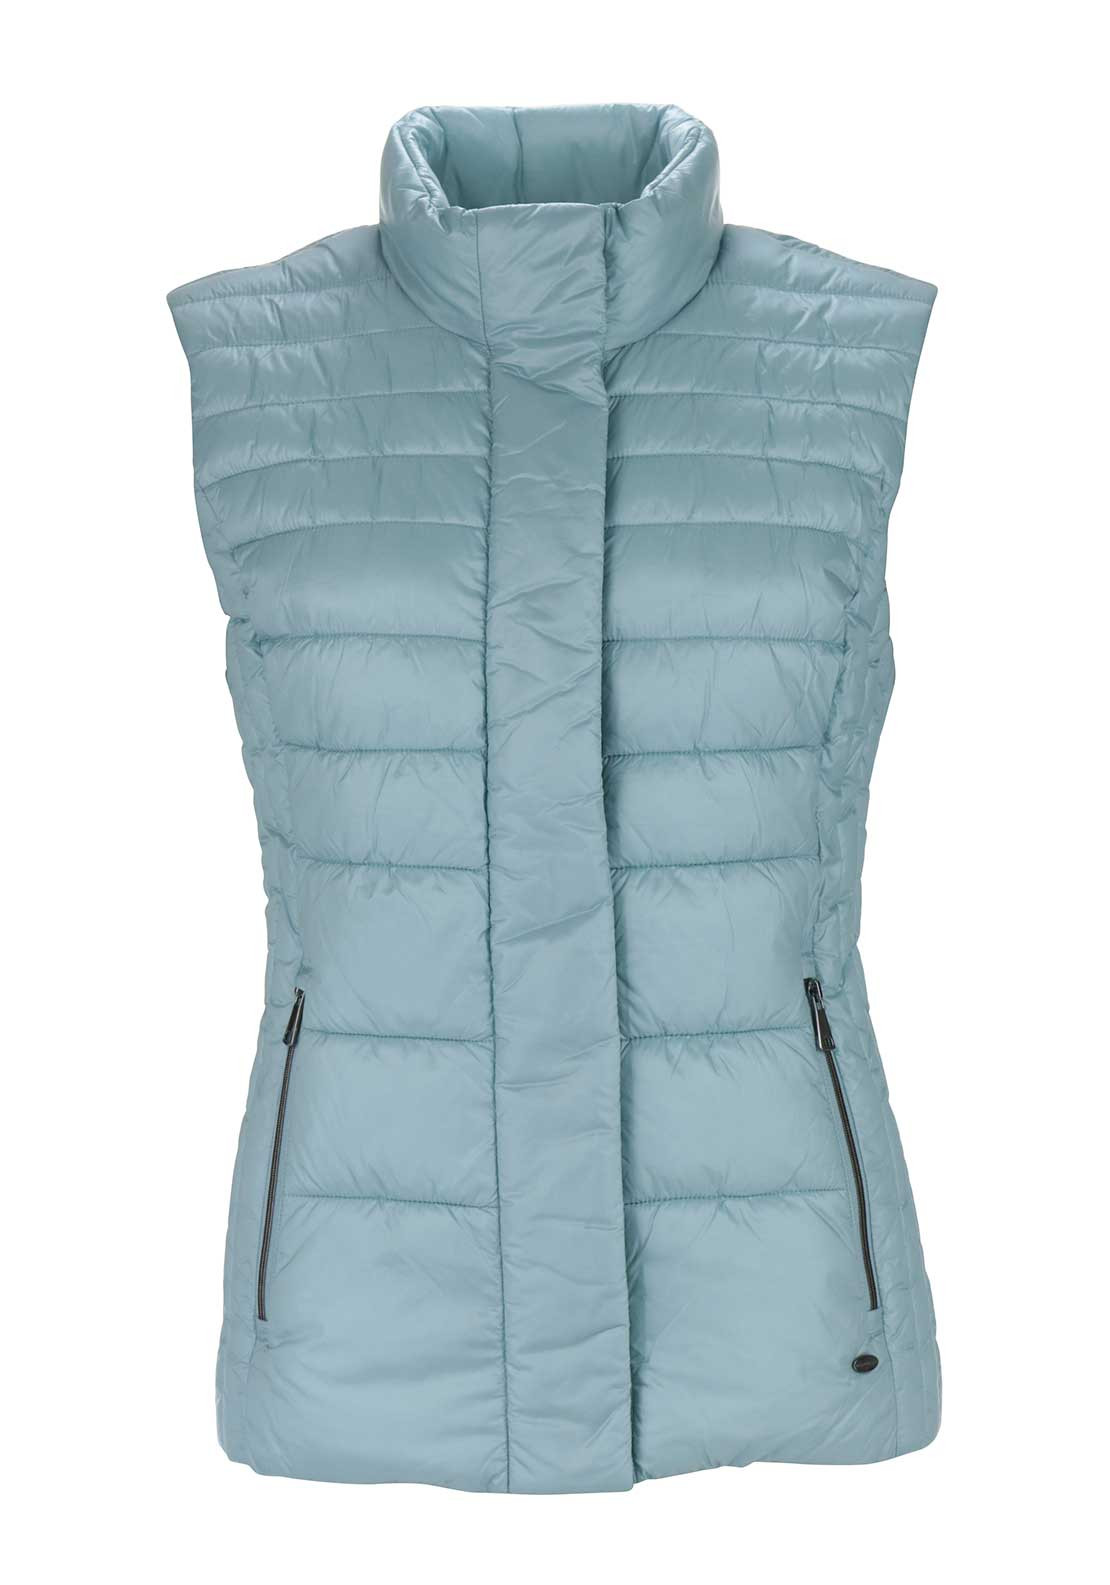 Gerry Weber Fitted Quilted Gilet, Aqua Blue